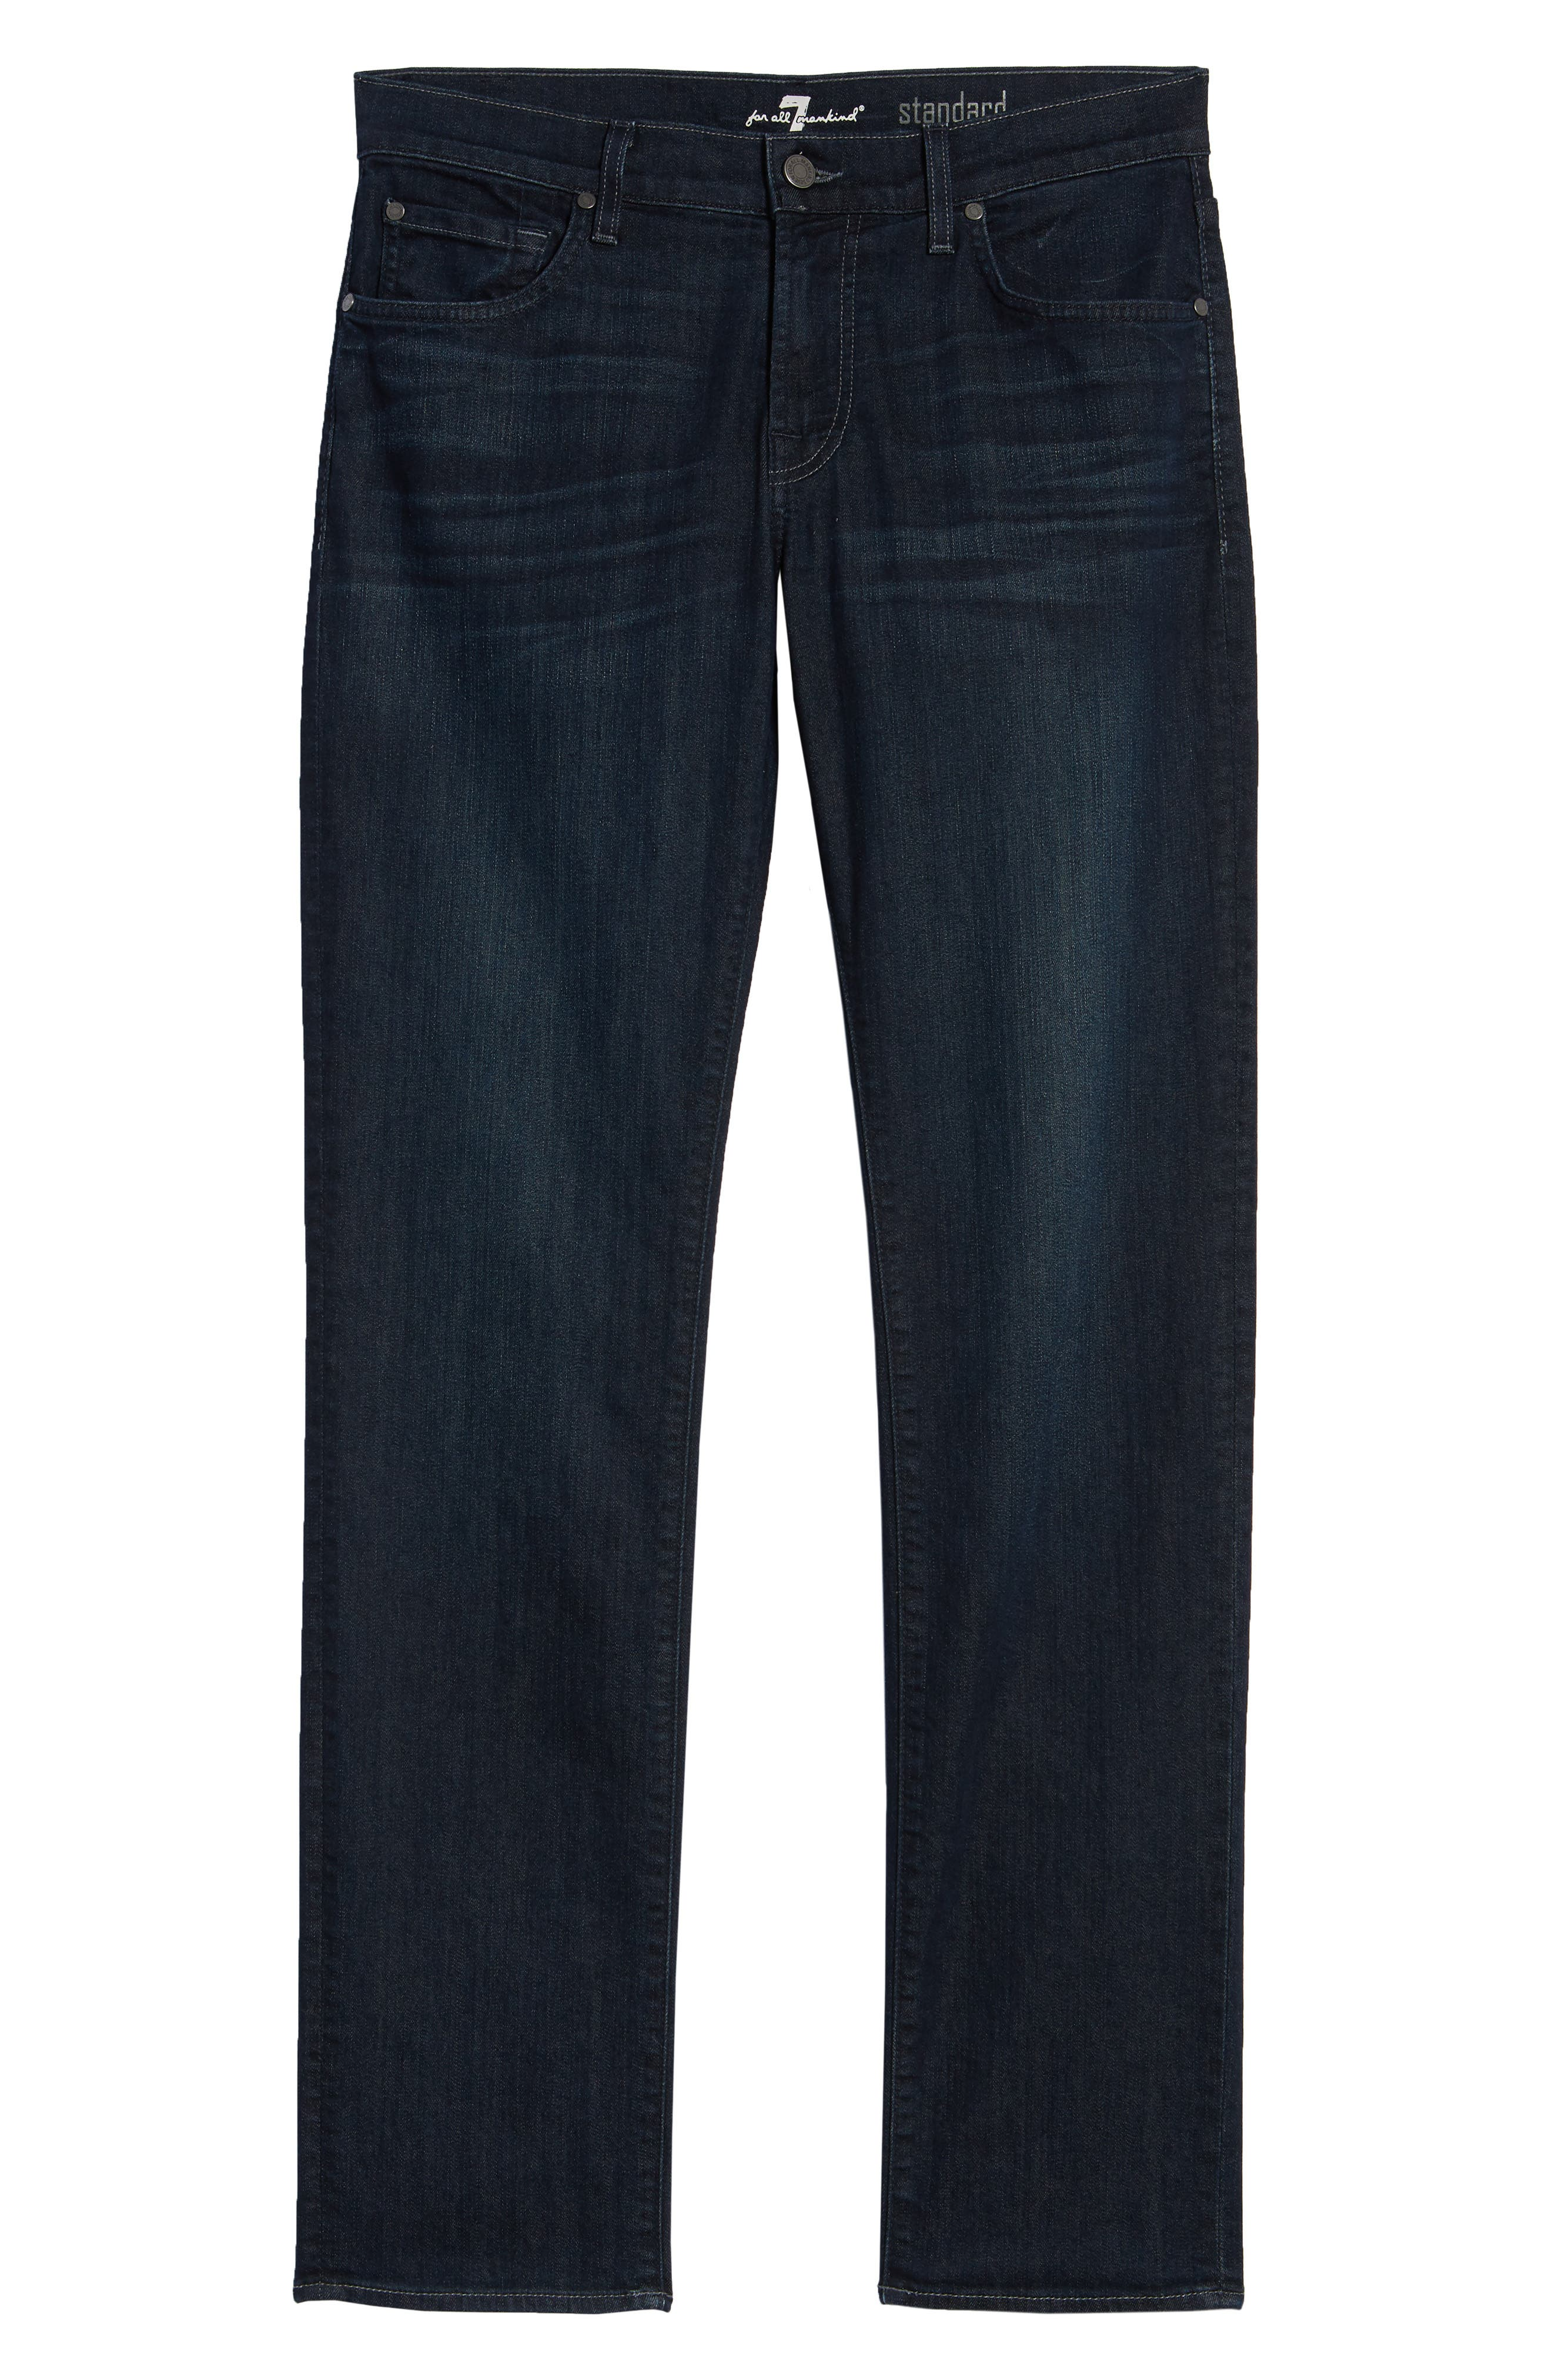 7 FOR ALL MANKIND<SUP>®</SUP>, Airweft Standard Straight Leg Jeans, Alternate thumbnail 6, color, 401